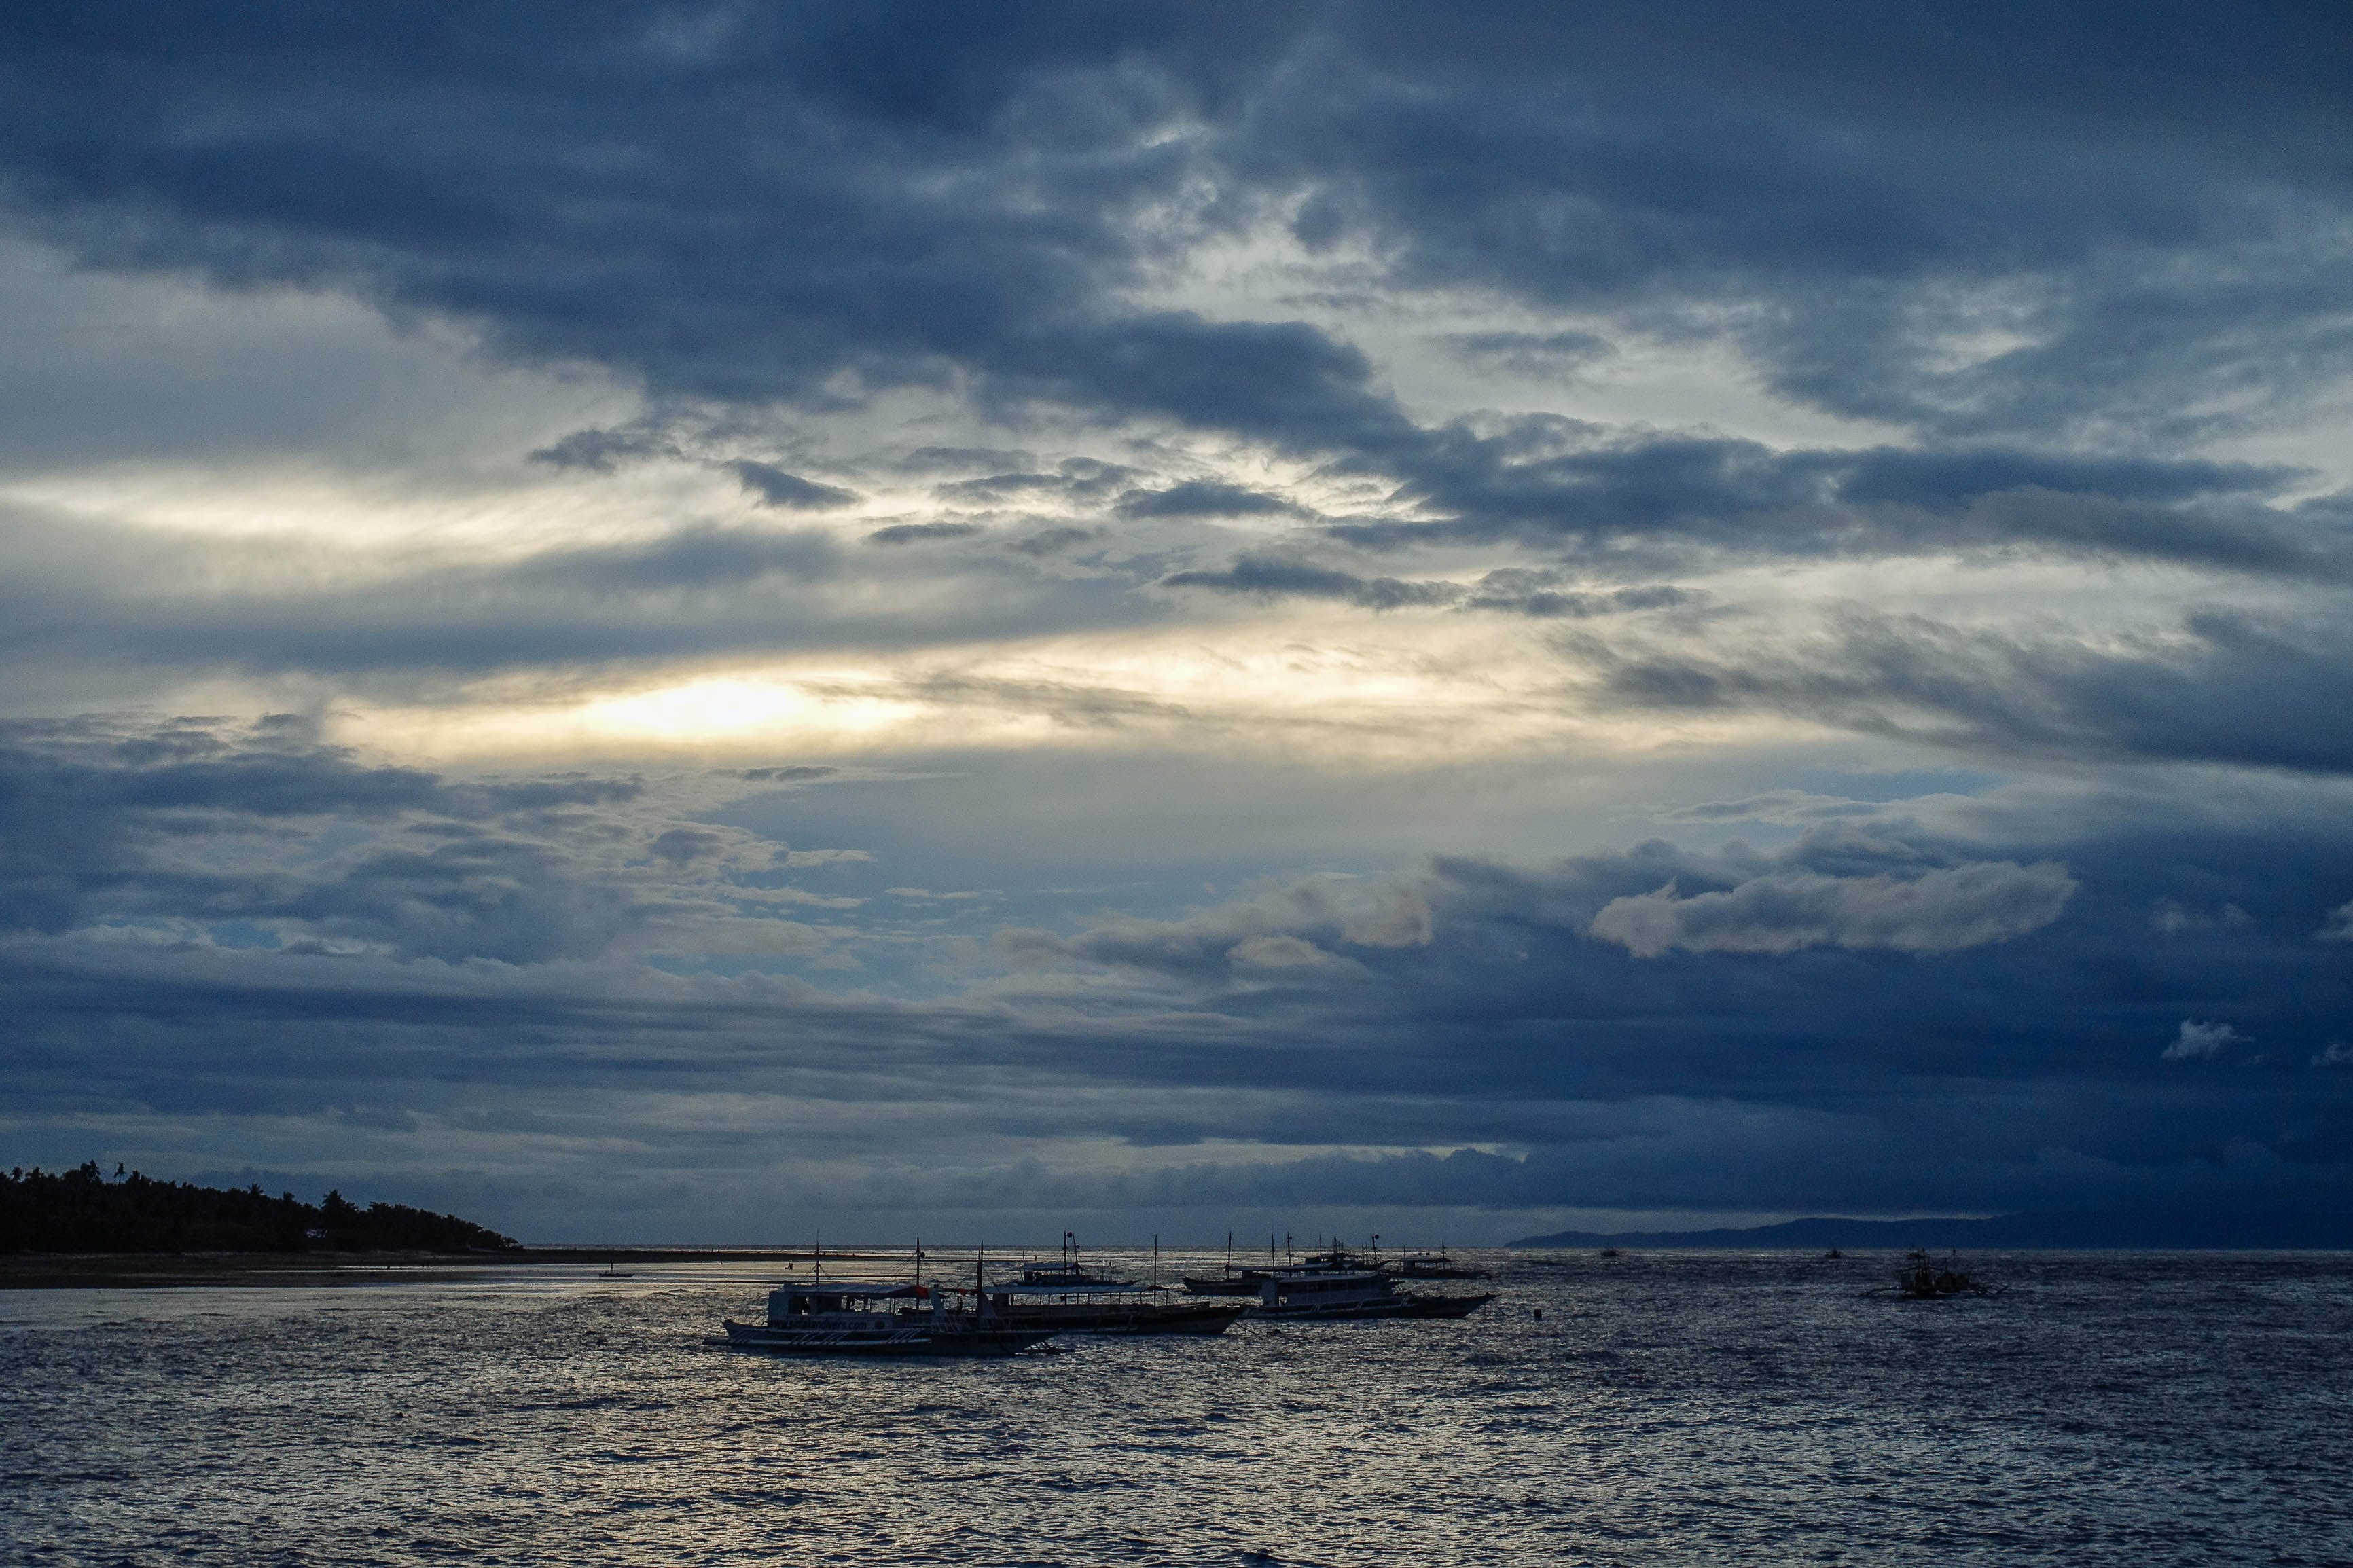 Ships on Body of Water during Cloudy Daytime